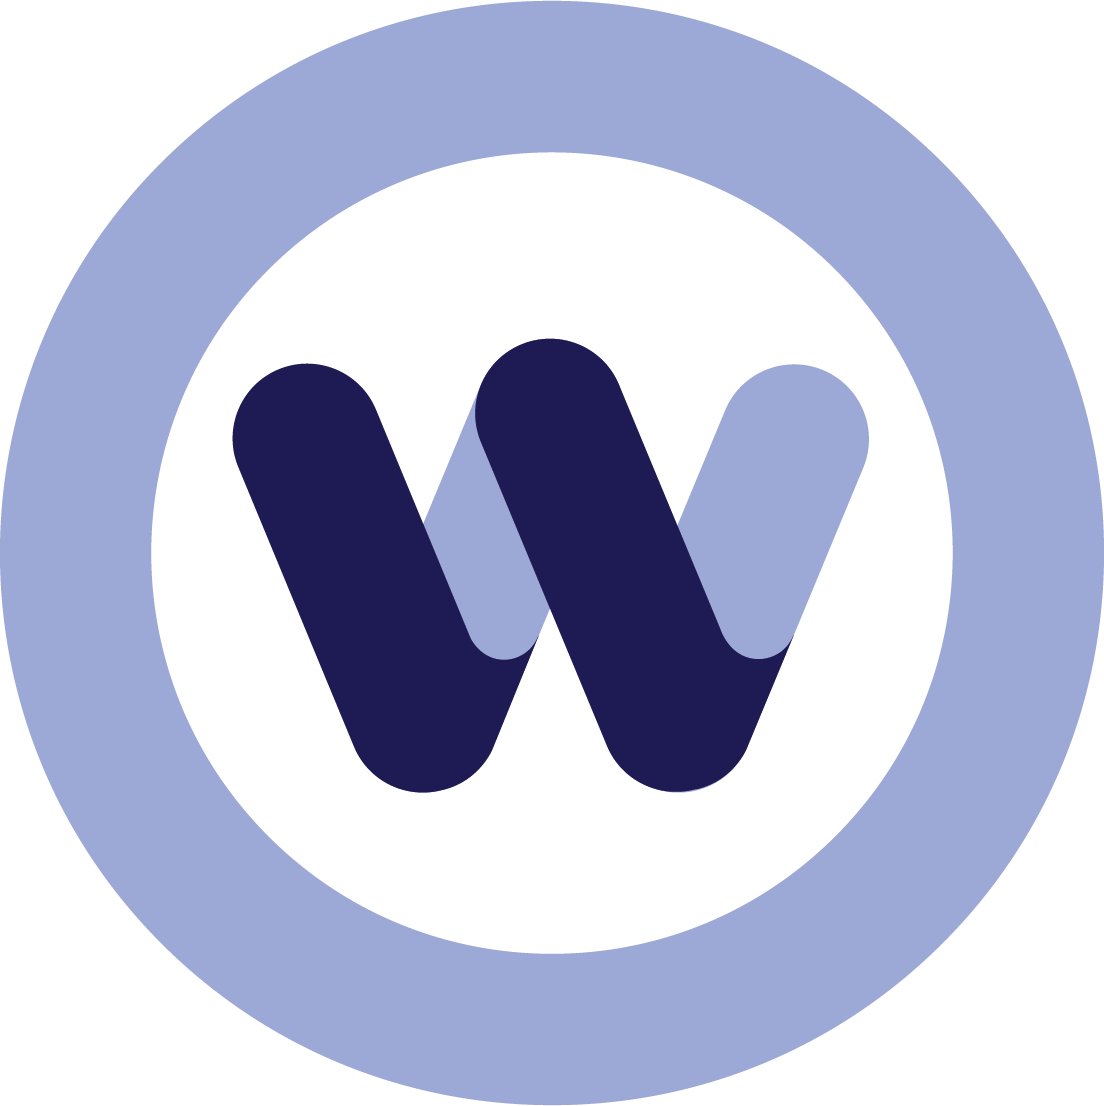 Women at Okta Logo color